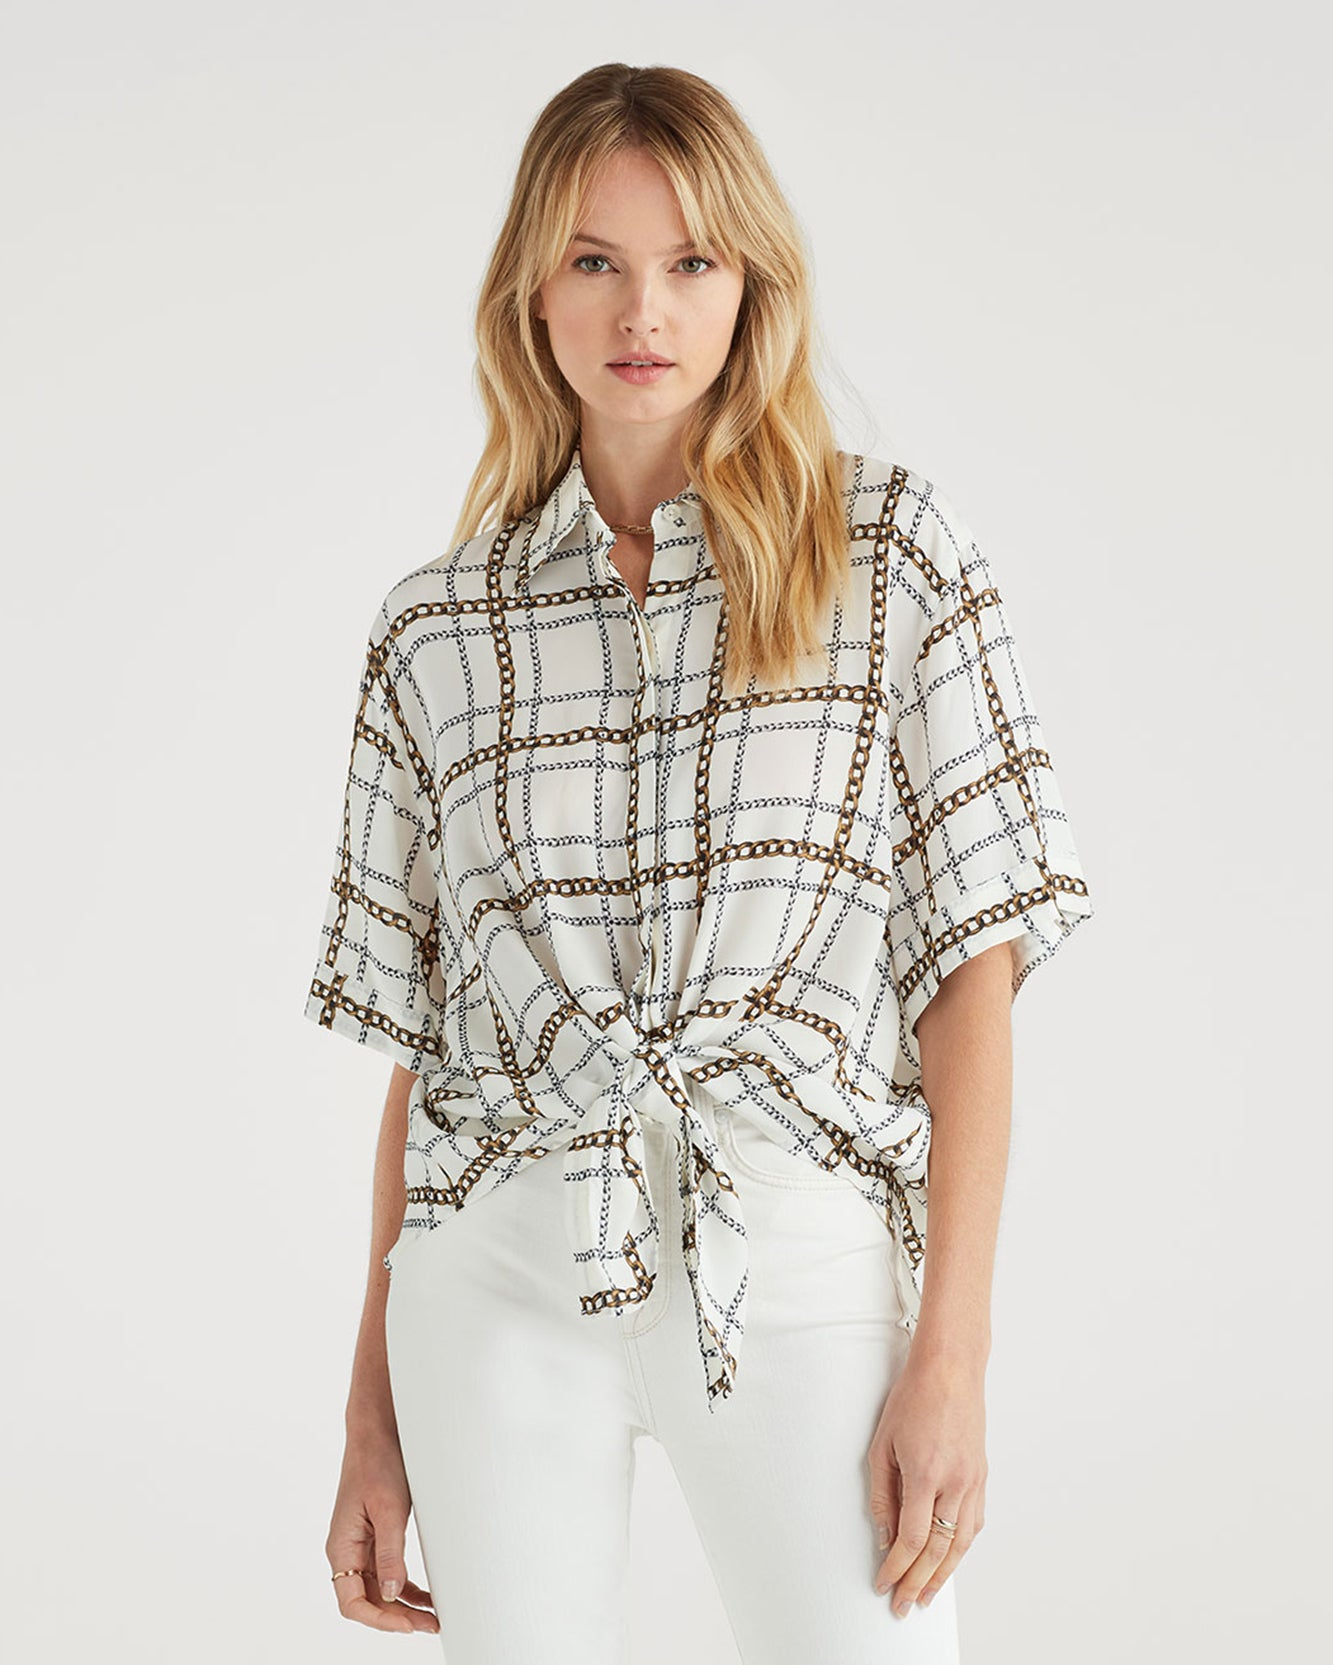 Image of Short Sleeve Tie Front Shirt in Chain Print